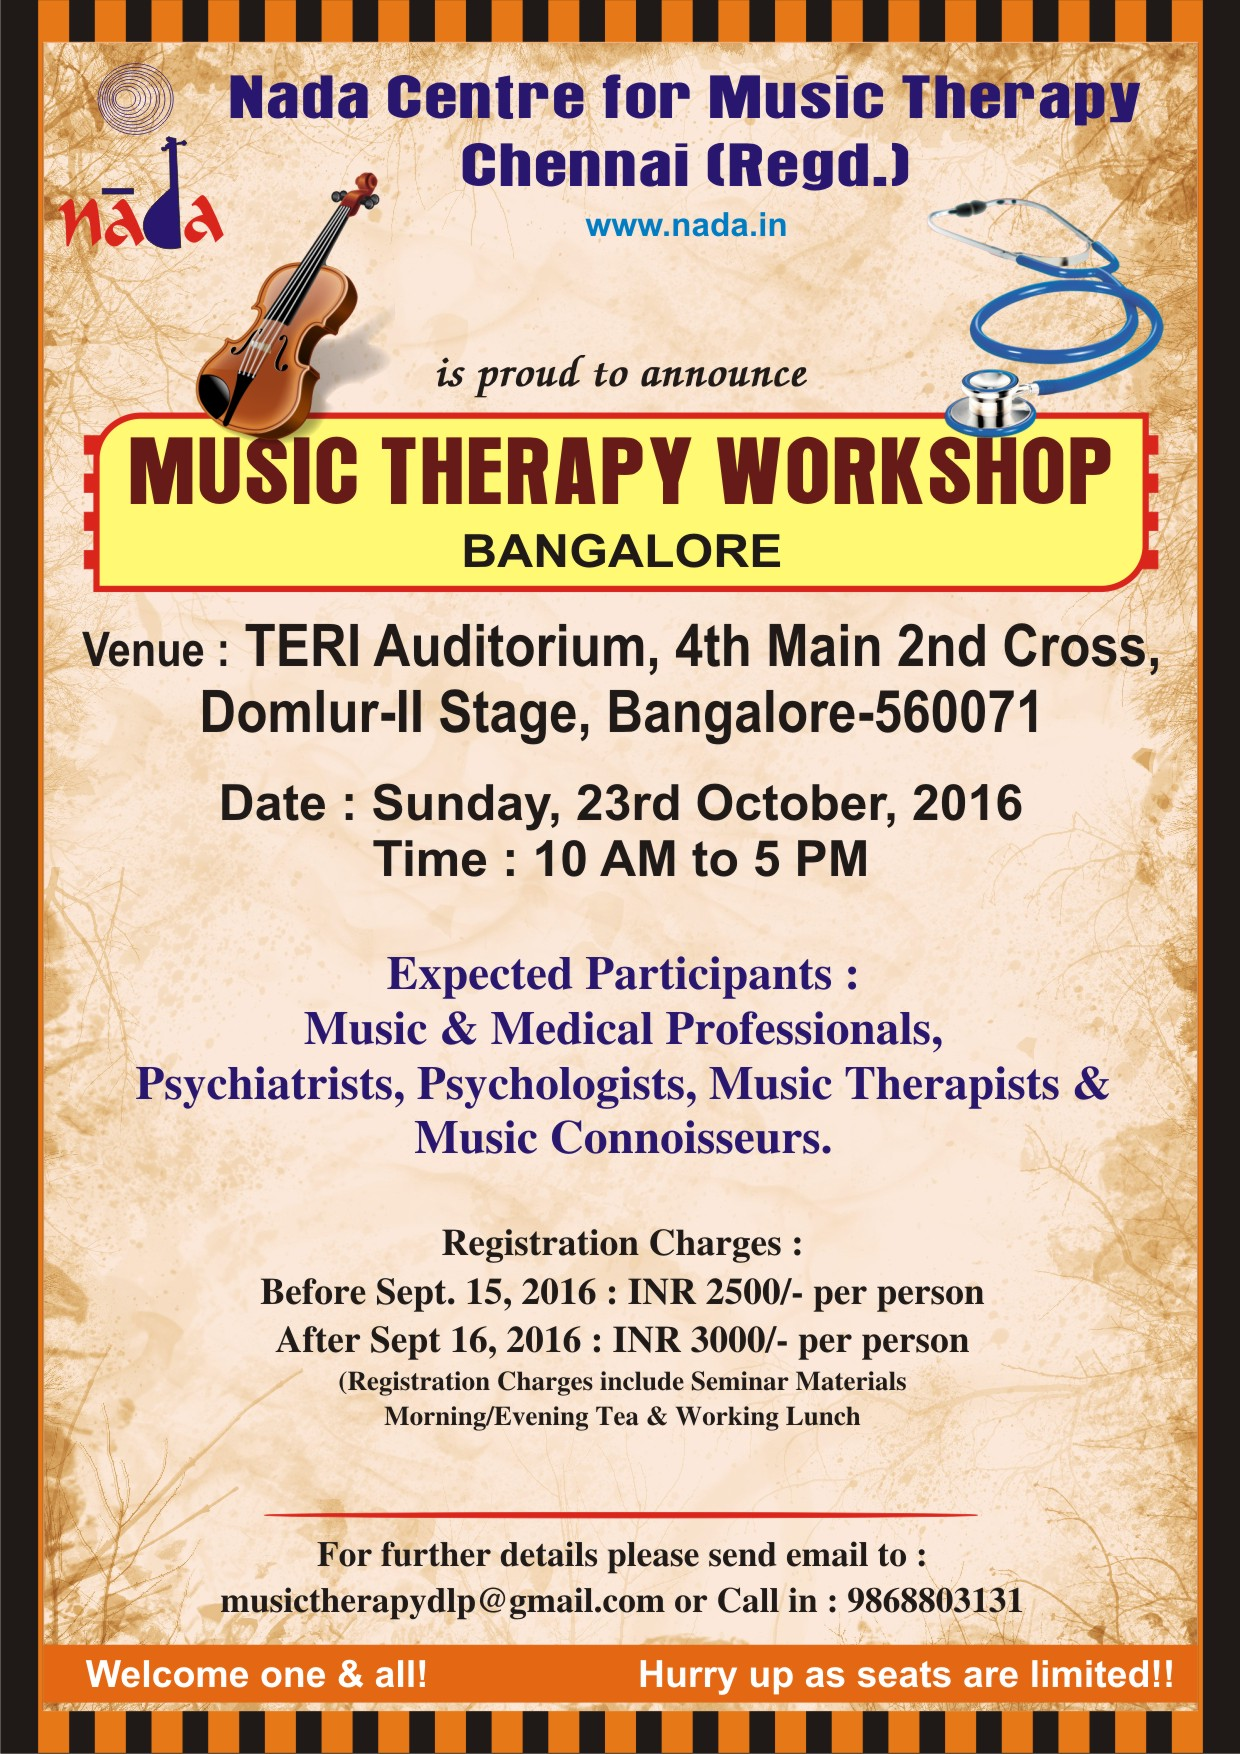 WELCOME TO JOIN THE BANGALORE WORKSHOP ON 23RD OCTOBER 2015!